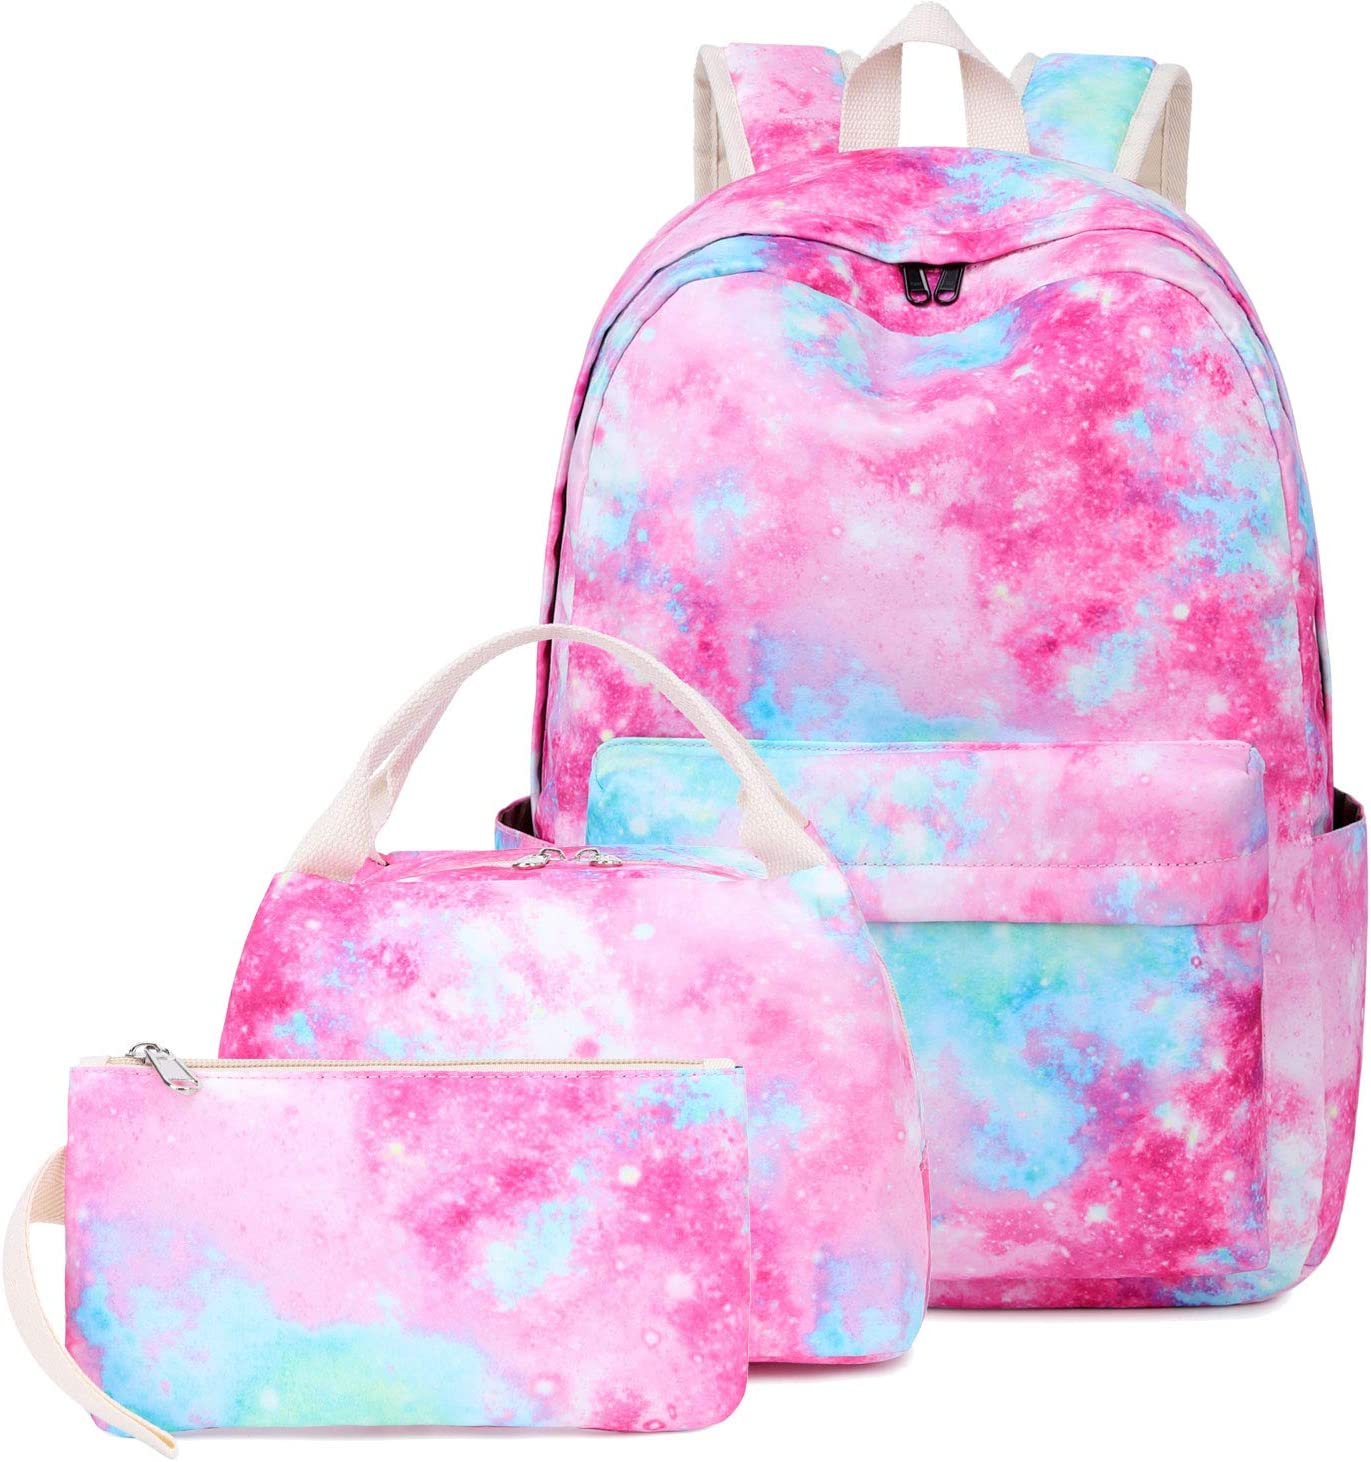 Lightweight Water Resistant Backpacks for Teen Girls School Backpack with Lunch Bag and Pencil Case